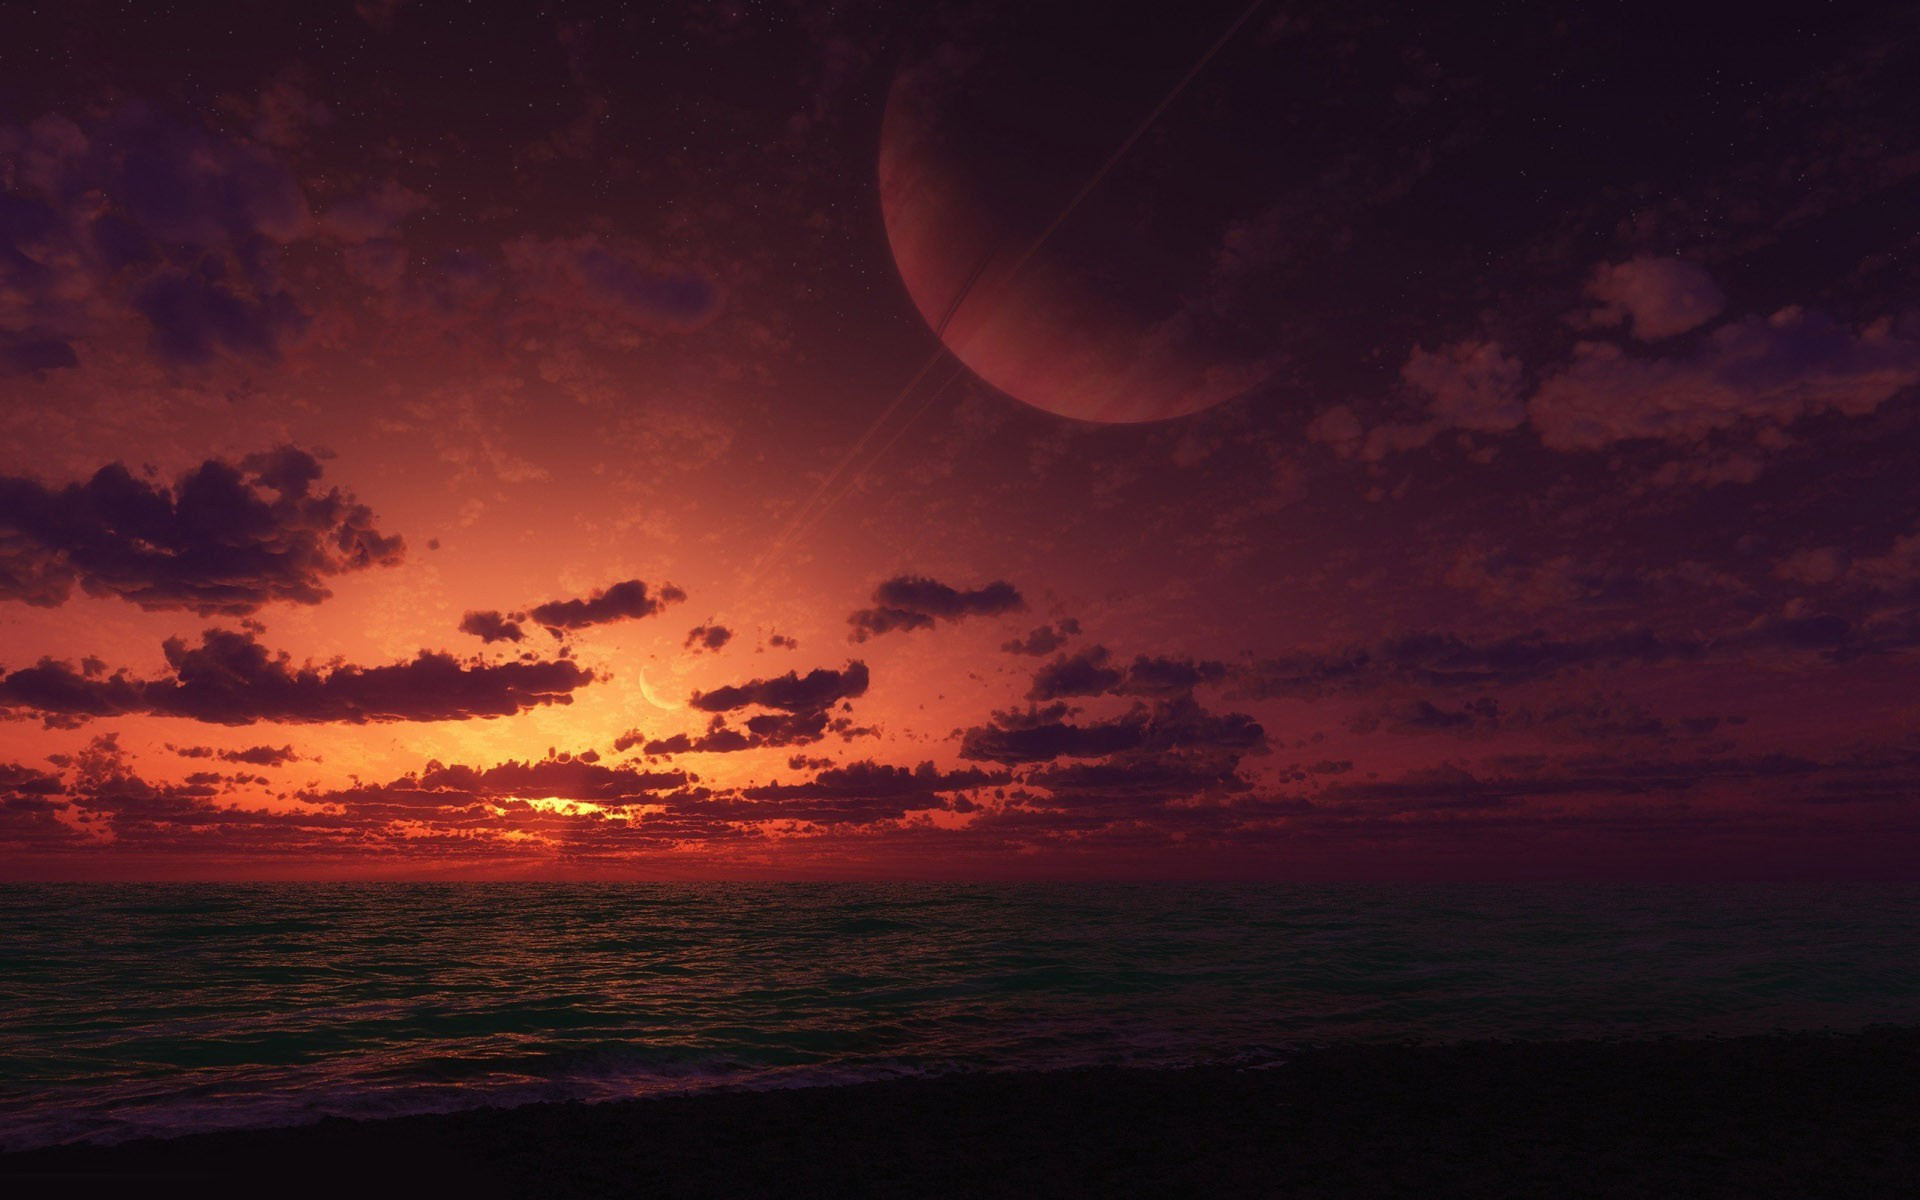 Ringed planet over the sea